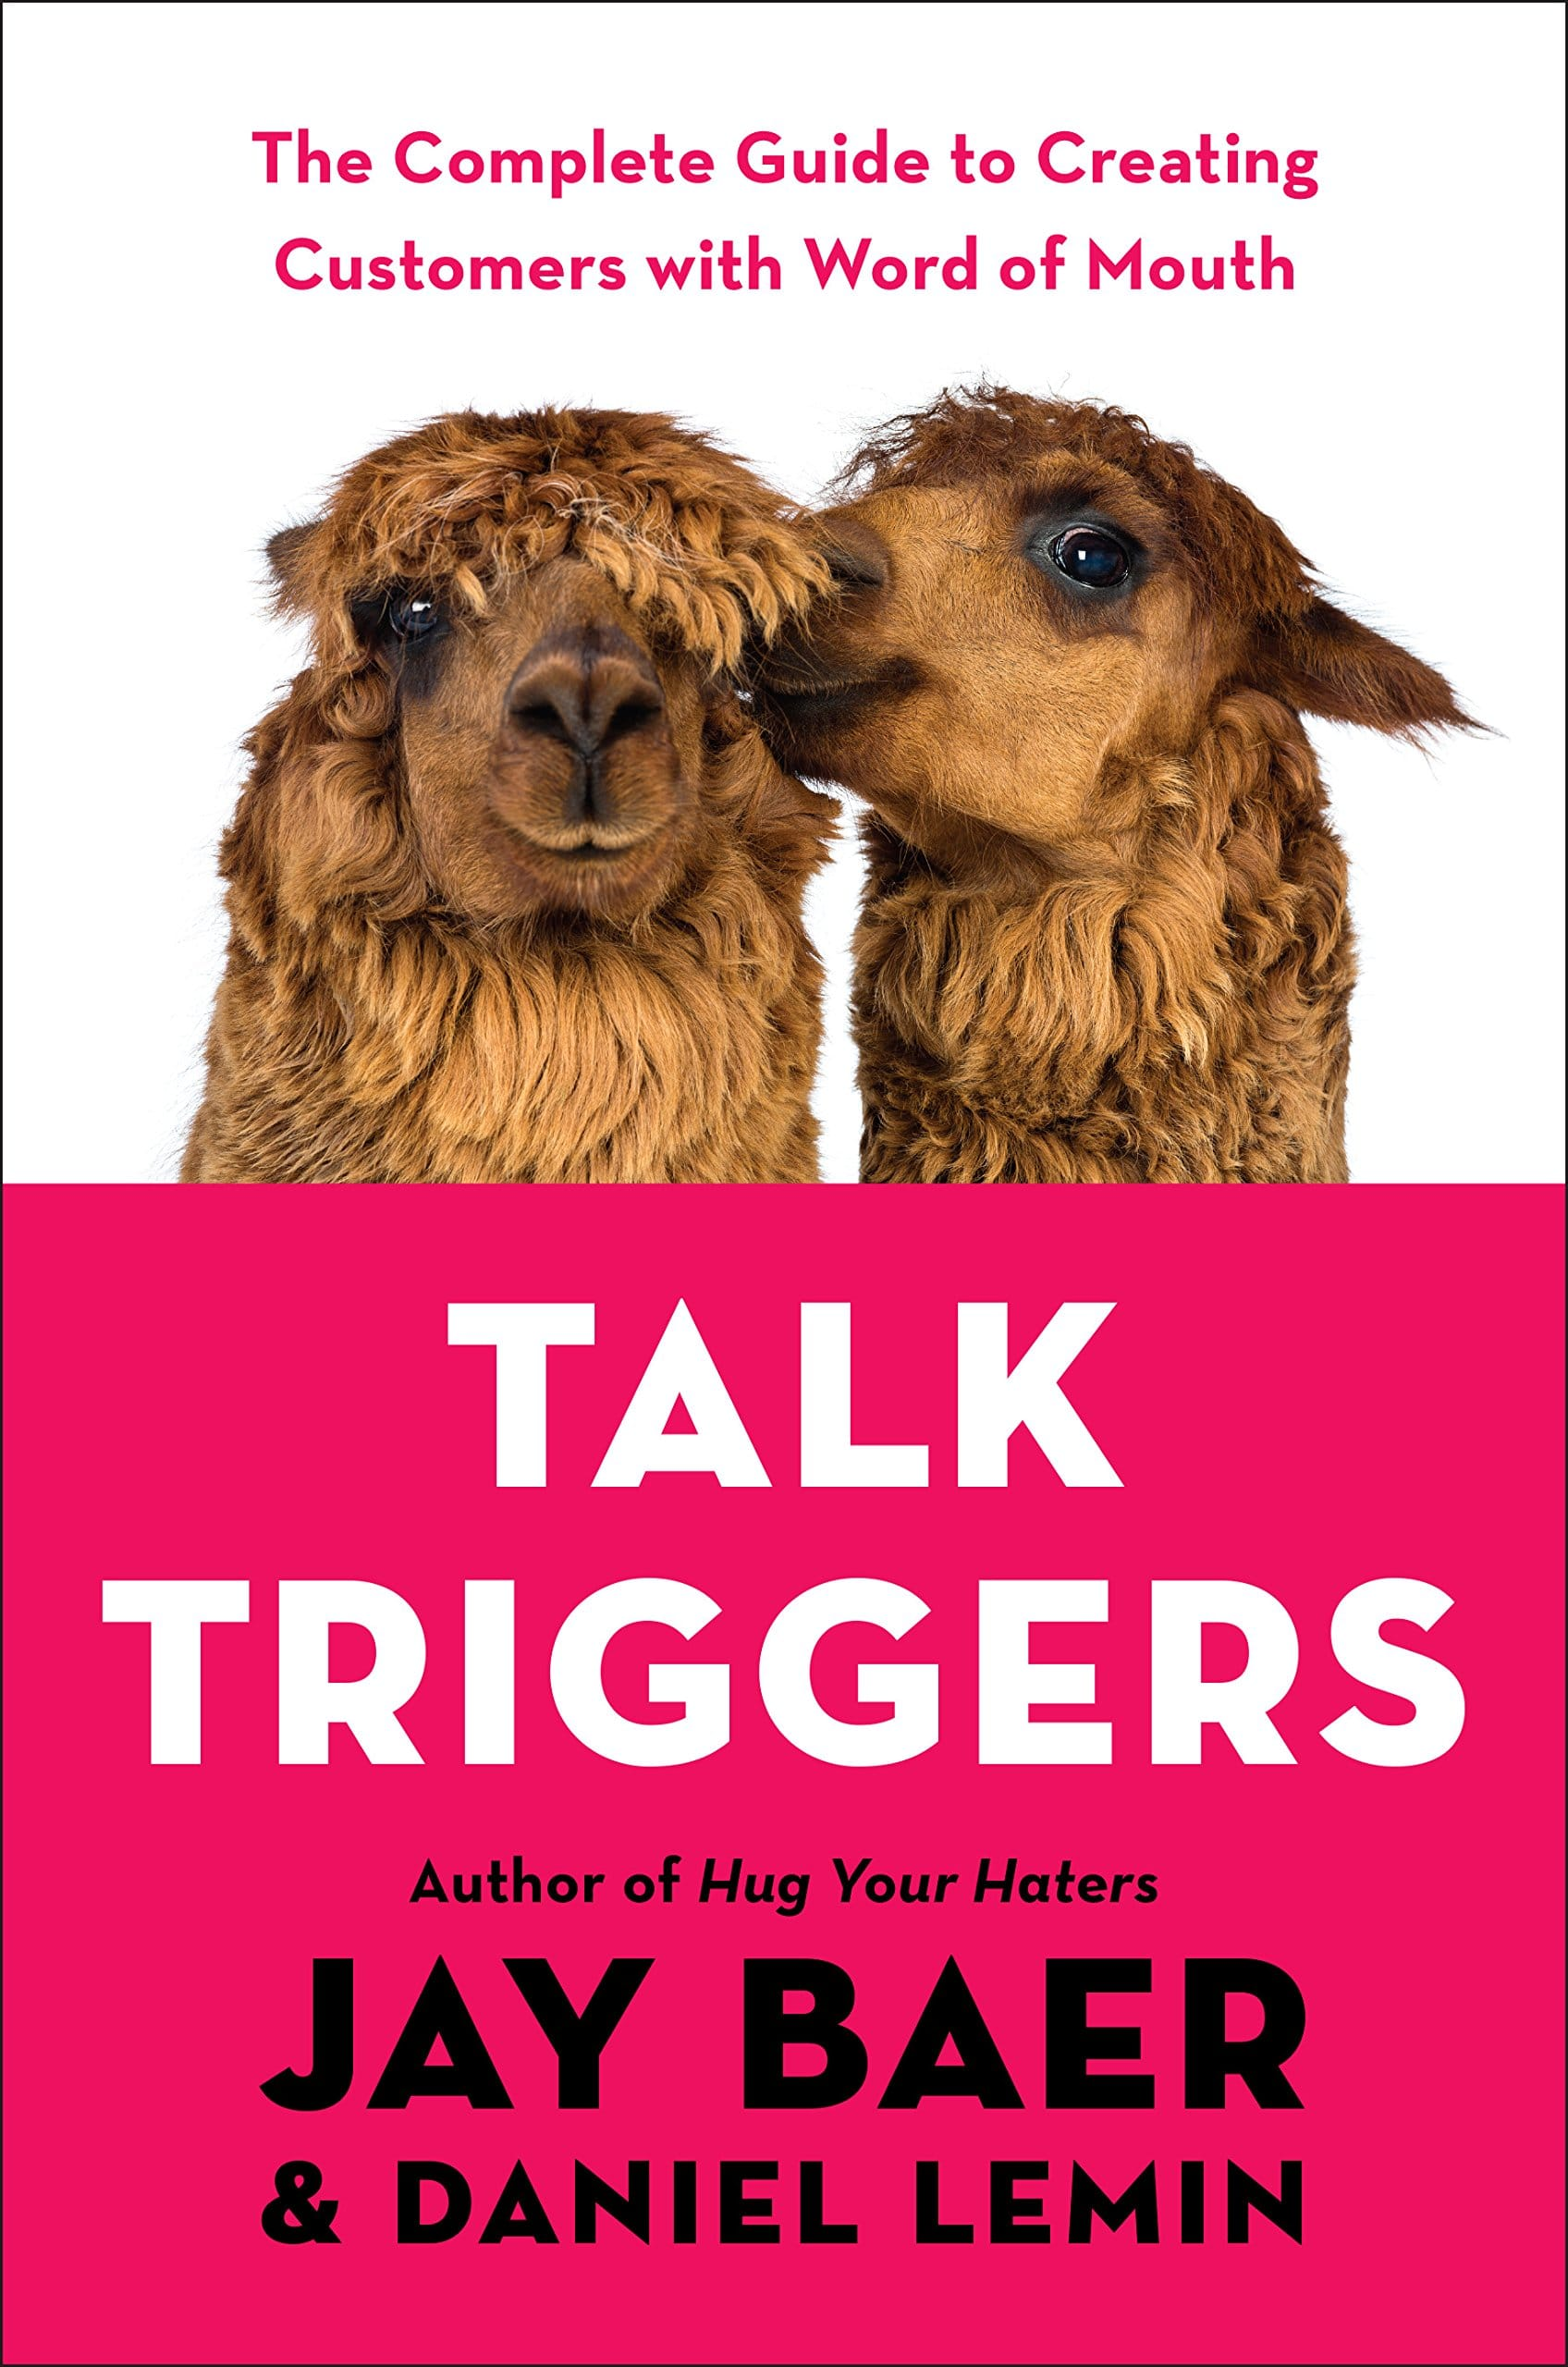 Book cover with 2 Llamas talking to each other.